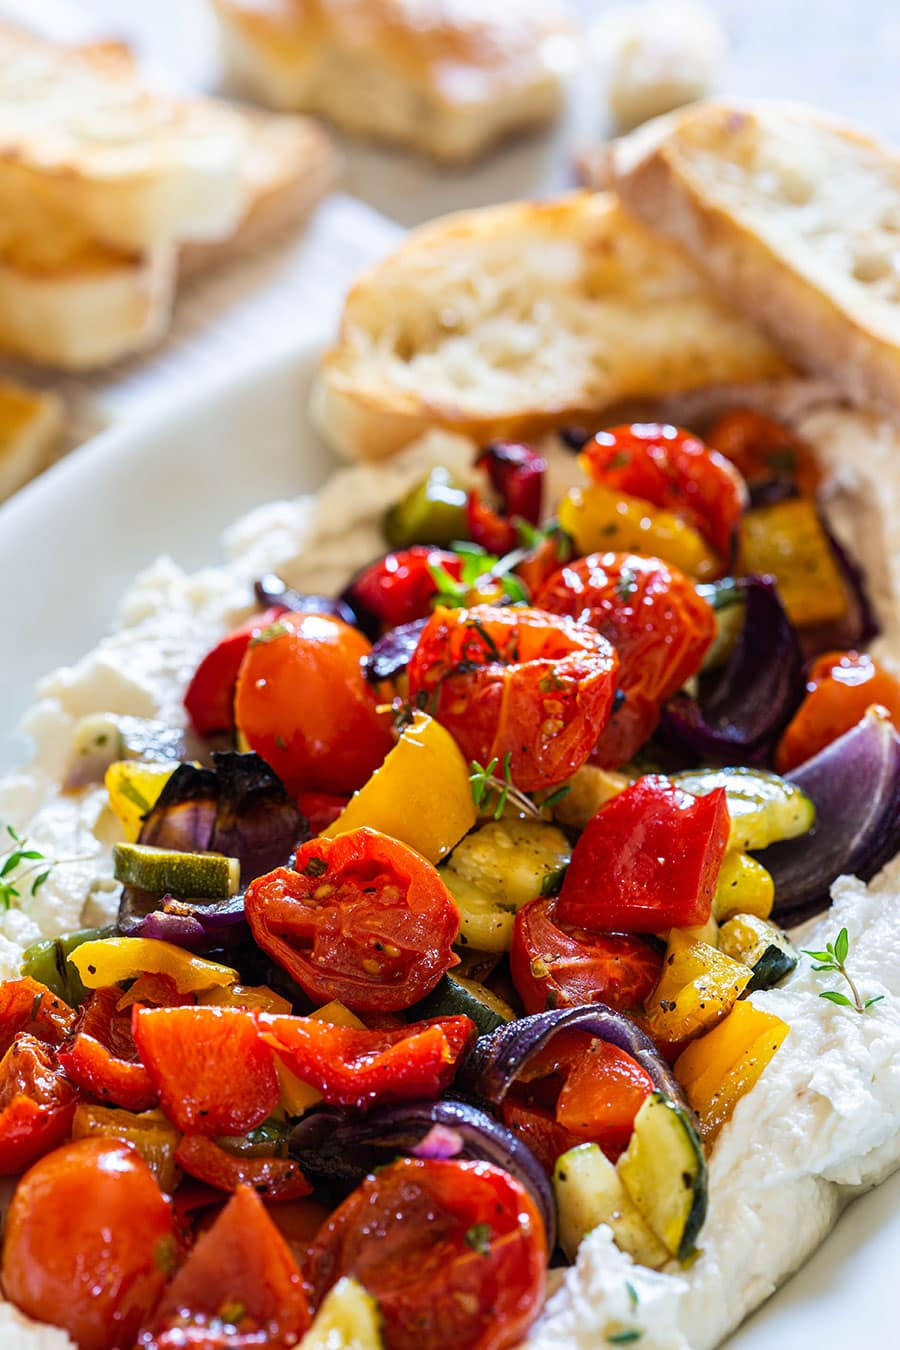 Summer vegetables roasted and served with ricotta cheese.